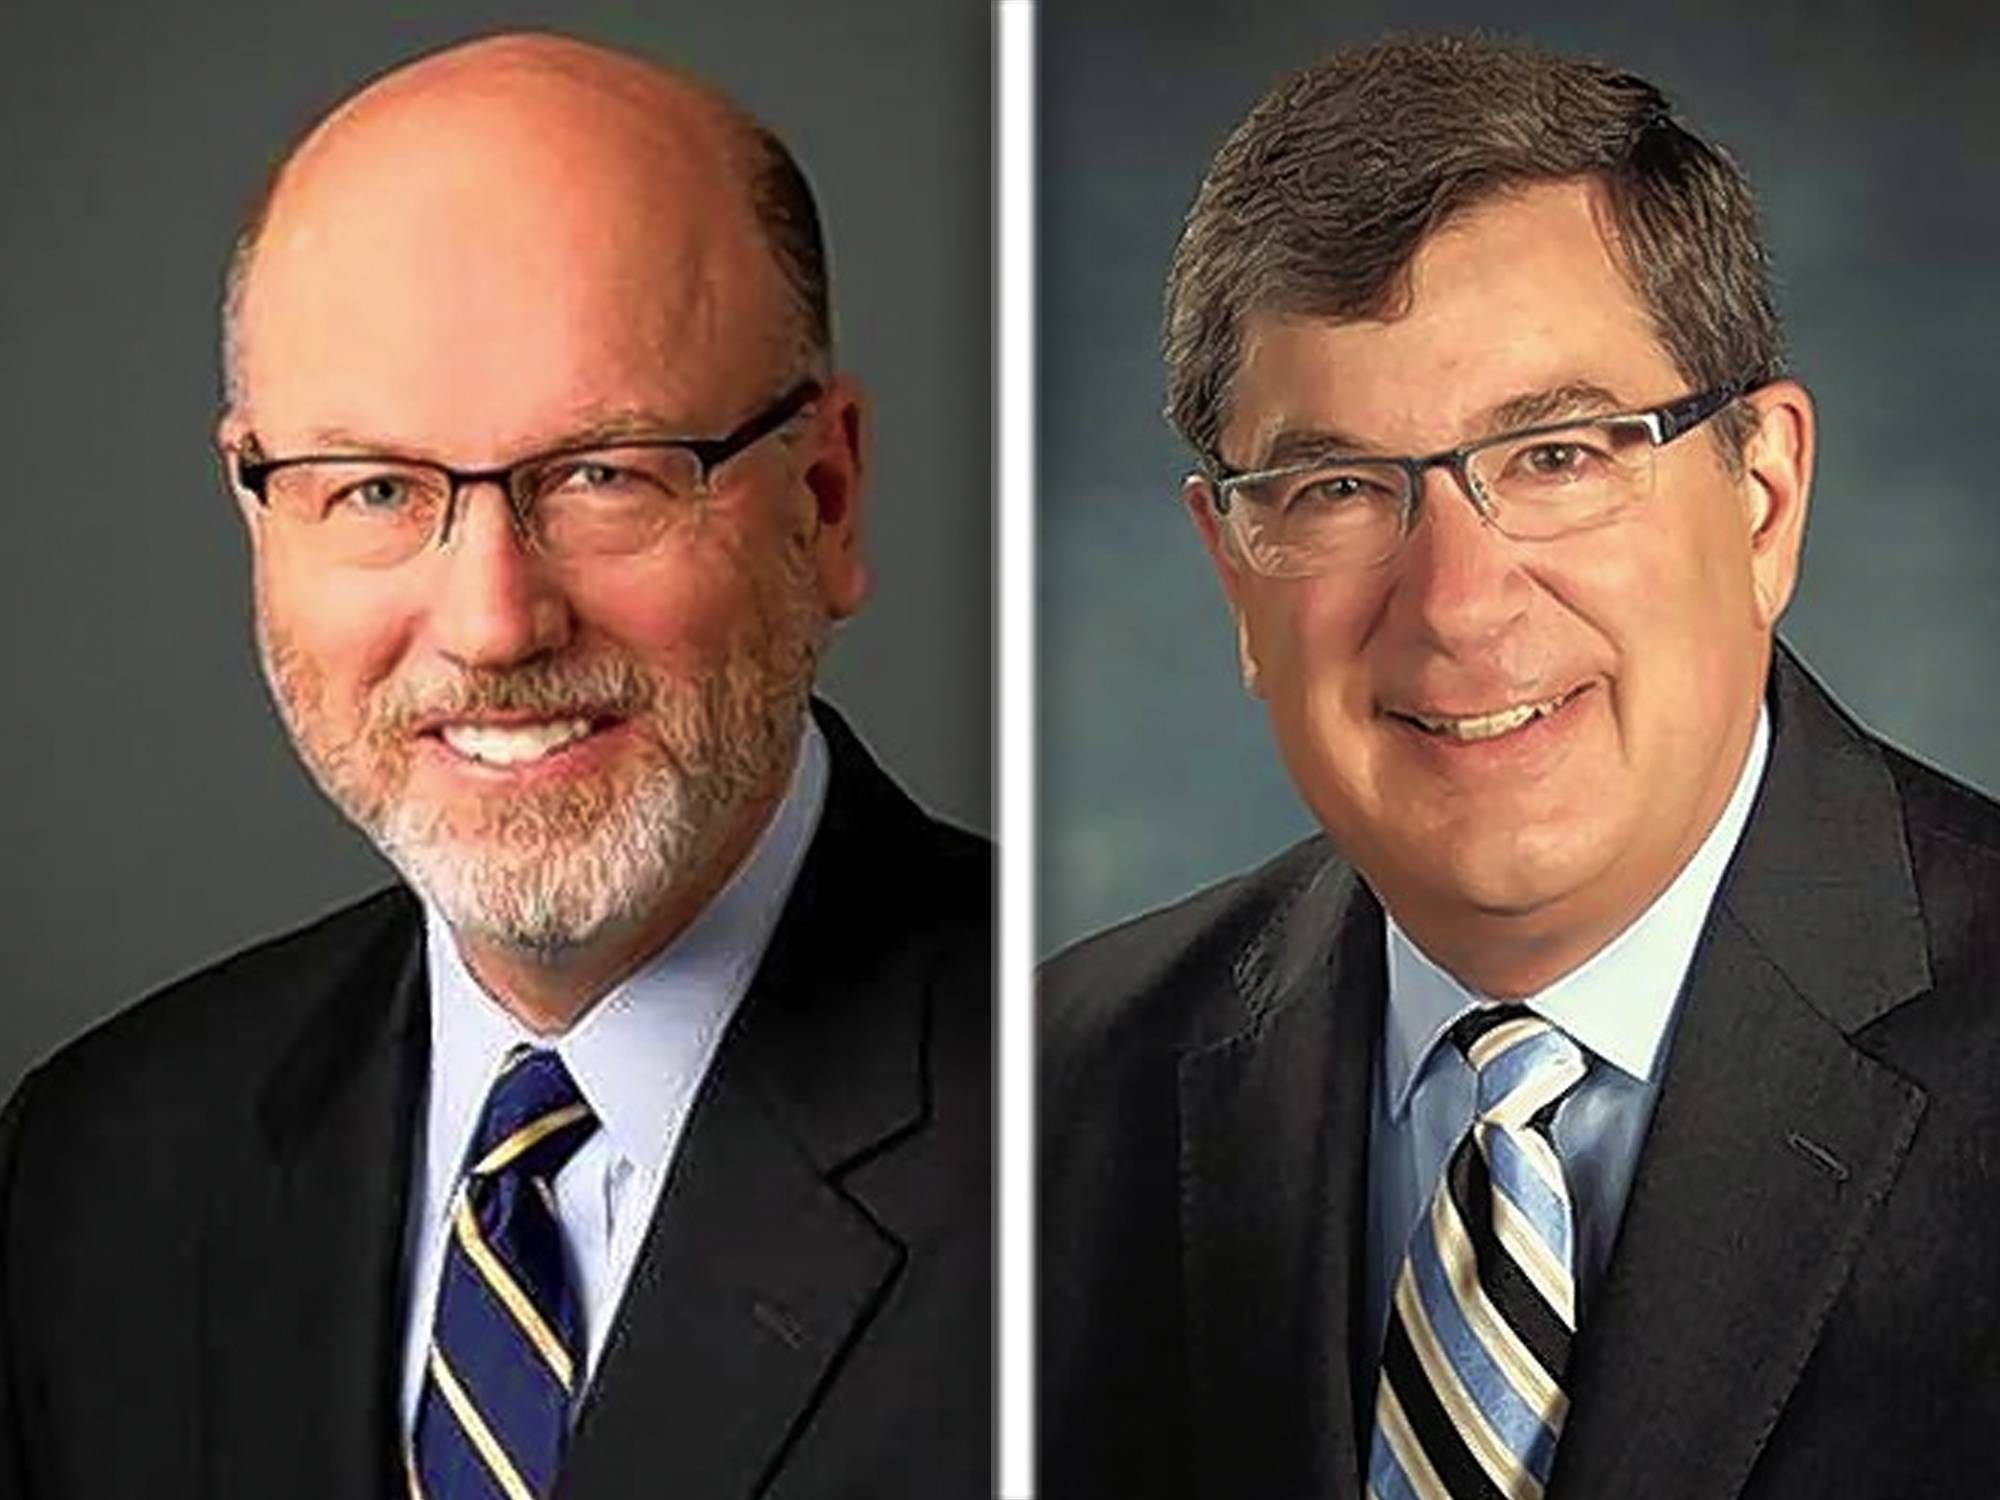 John Prendiville, left, and Phil Suess are candidates for mayor in Wheaton.